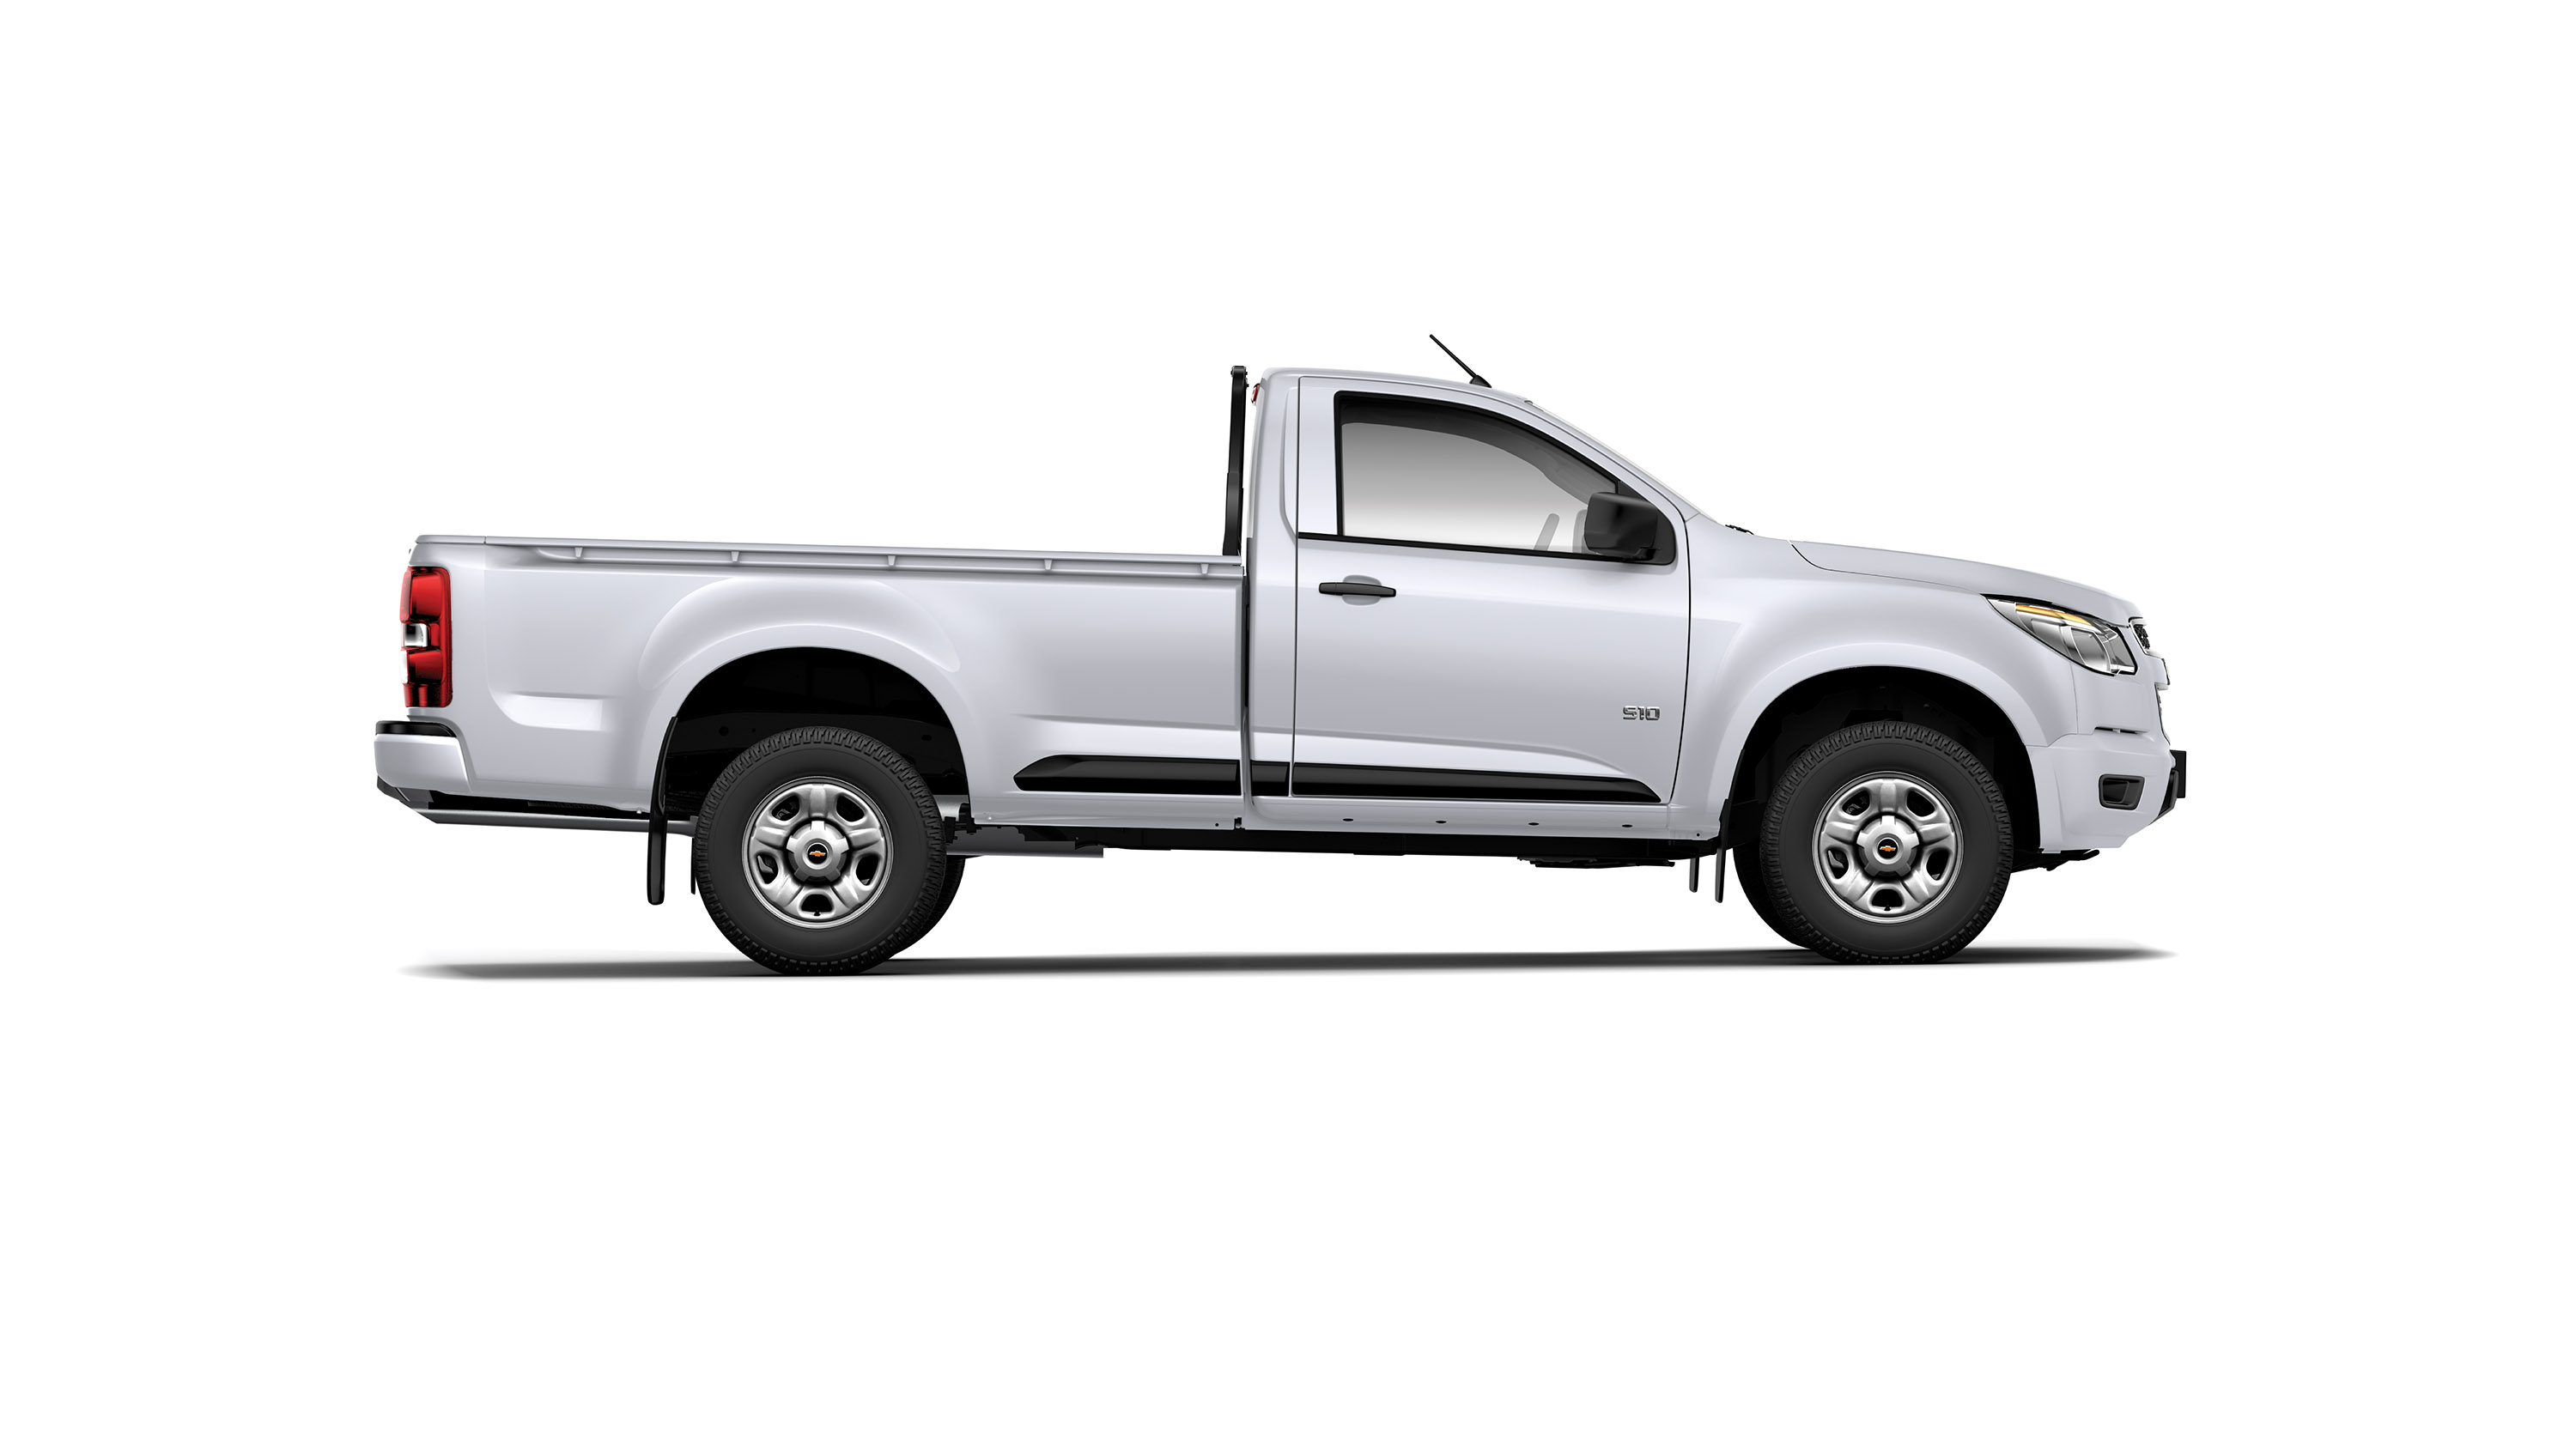 01-S10-Lateral-Derecho-15CHCO-PICREST-06-Blanco Cool Review About Chevy S10 tow Capacity with Breathtaking Gallery Cars Review